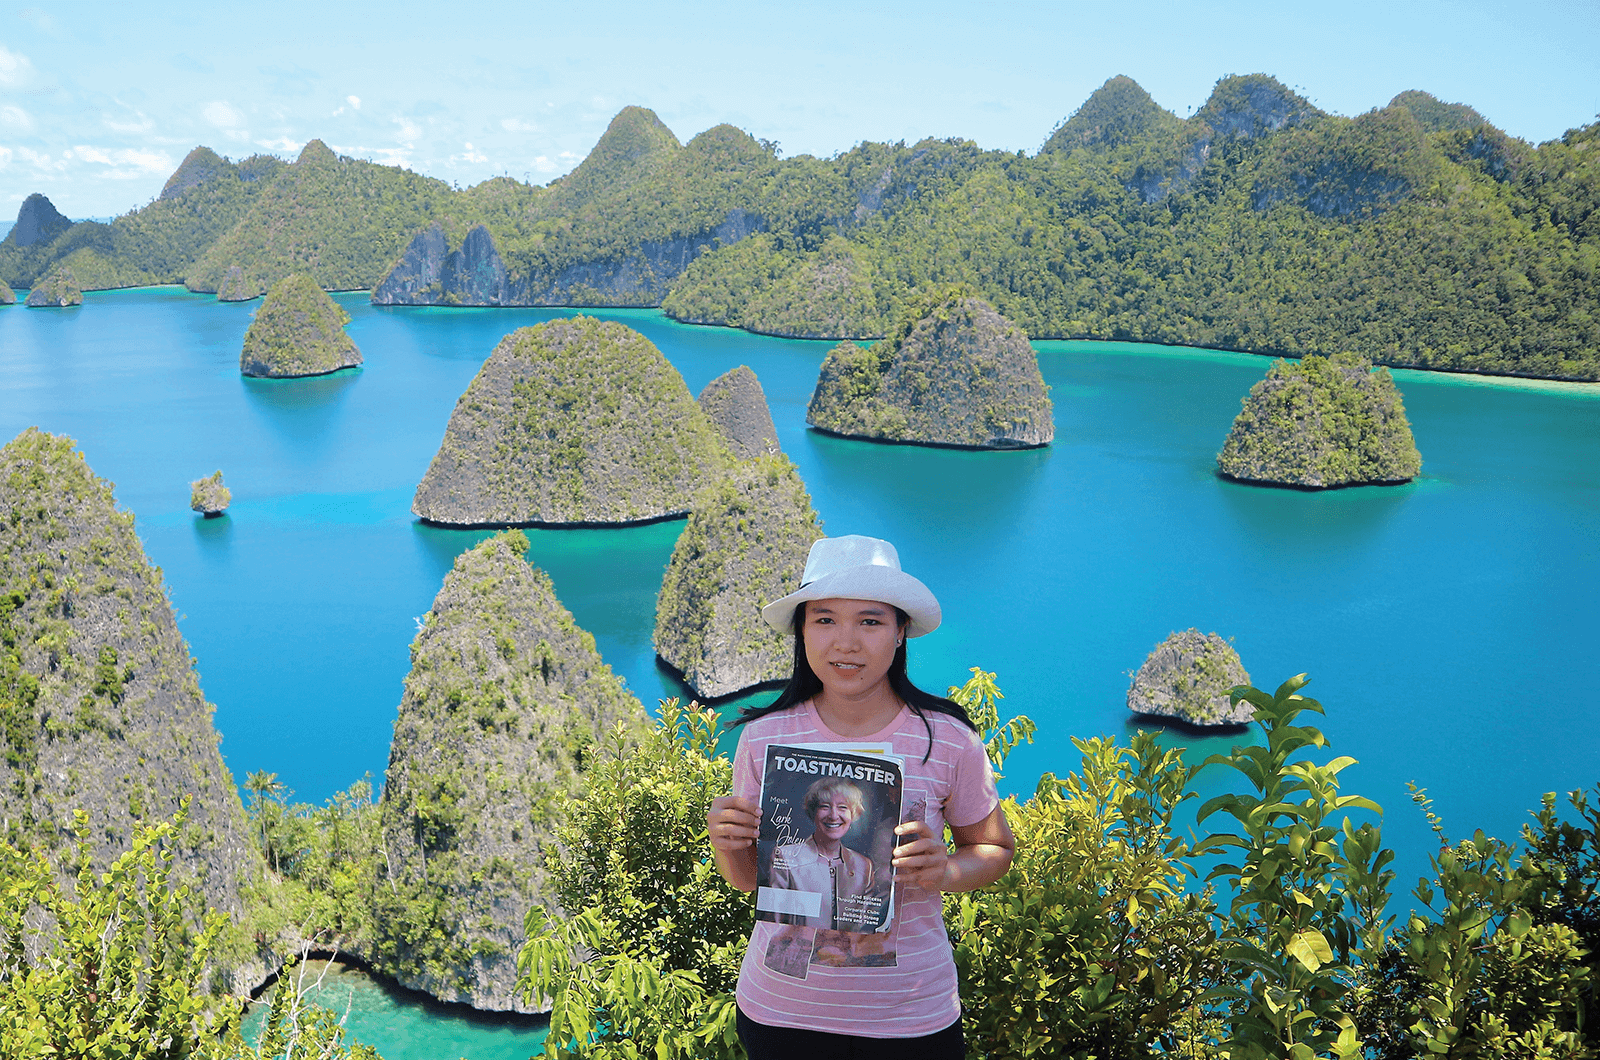 Dian Halleyuisari of Bali, Indonesia, travels to the Raja Ampat Islands, an archipelago located off the northwest tip of Bird's Head Peninsula in West Papua, Indonesia.